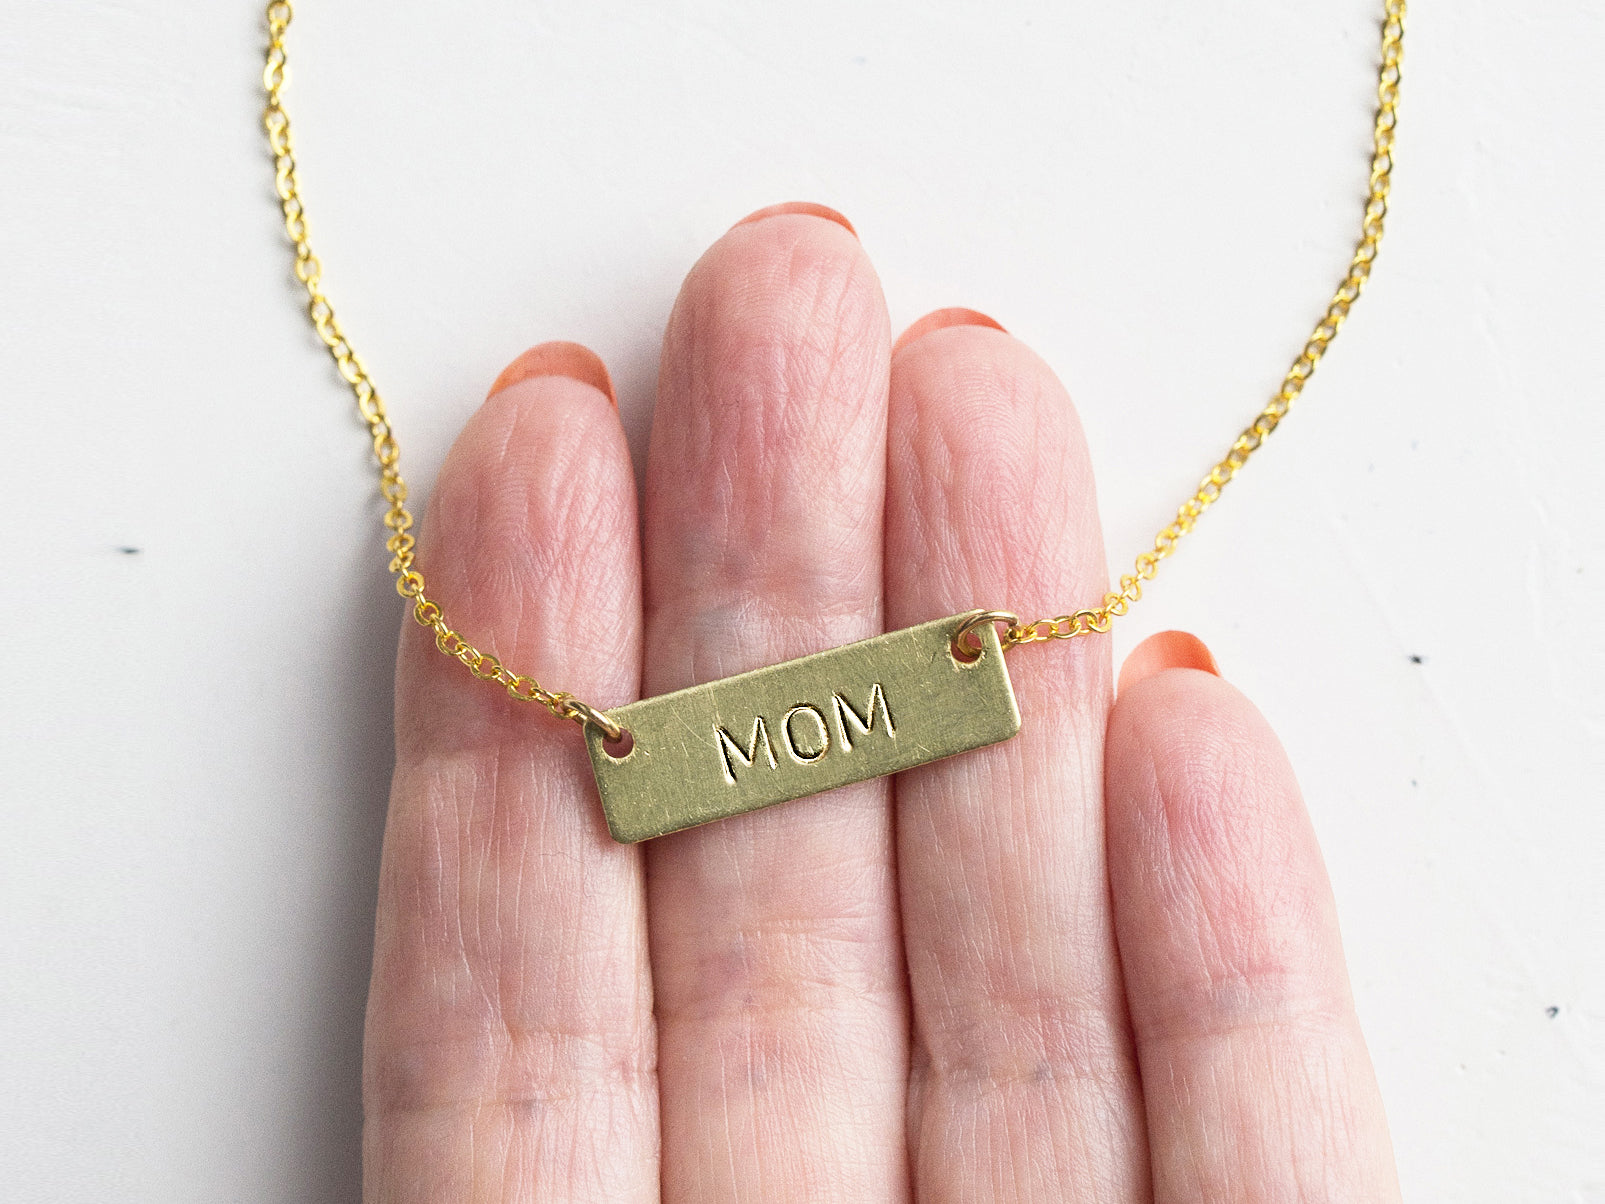 How to Make a Personalized Hand-Stamped Necklace